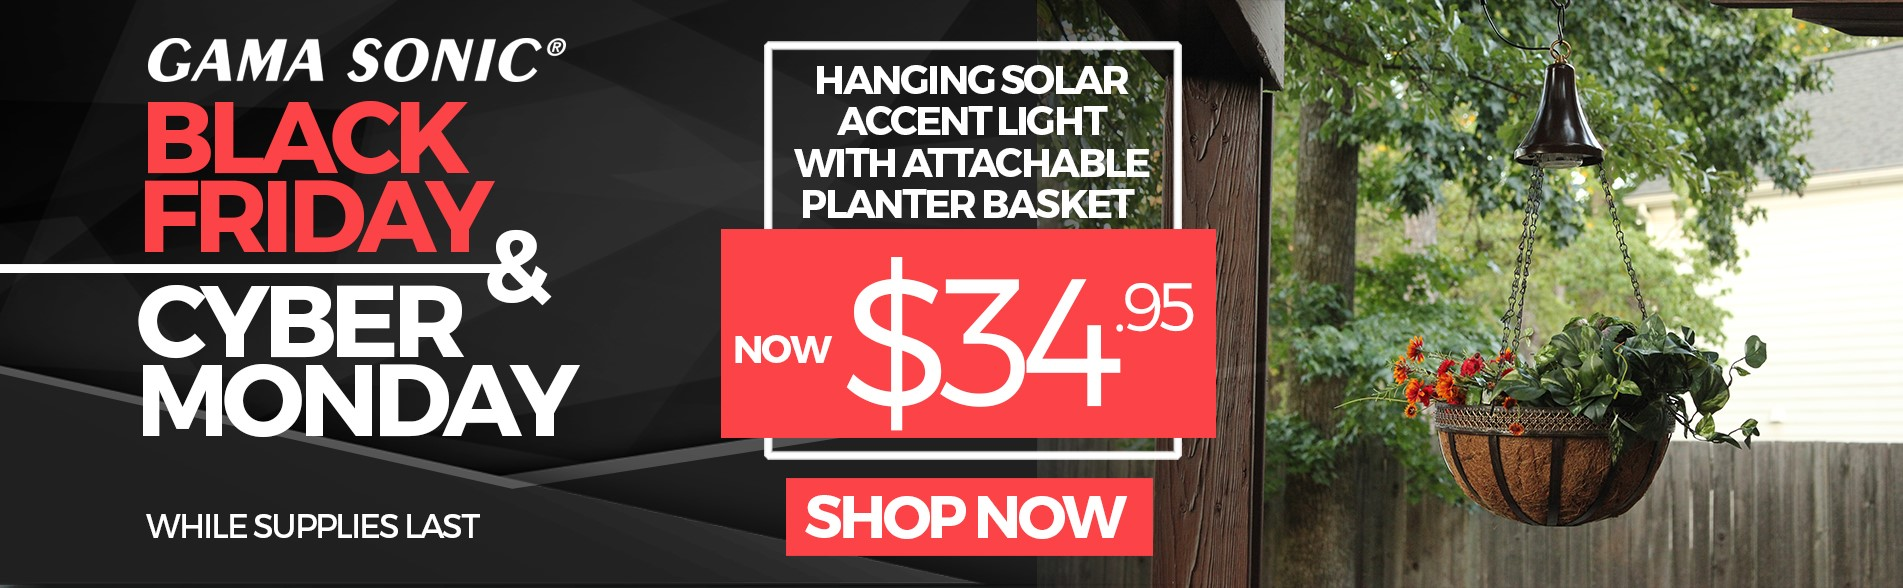 Solar Hanging Accent Light